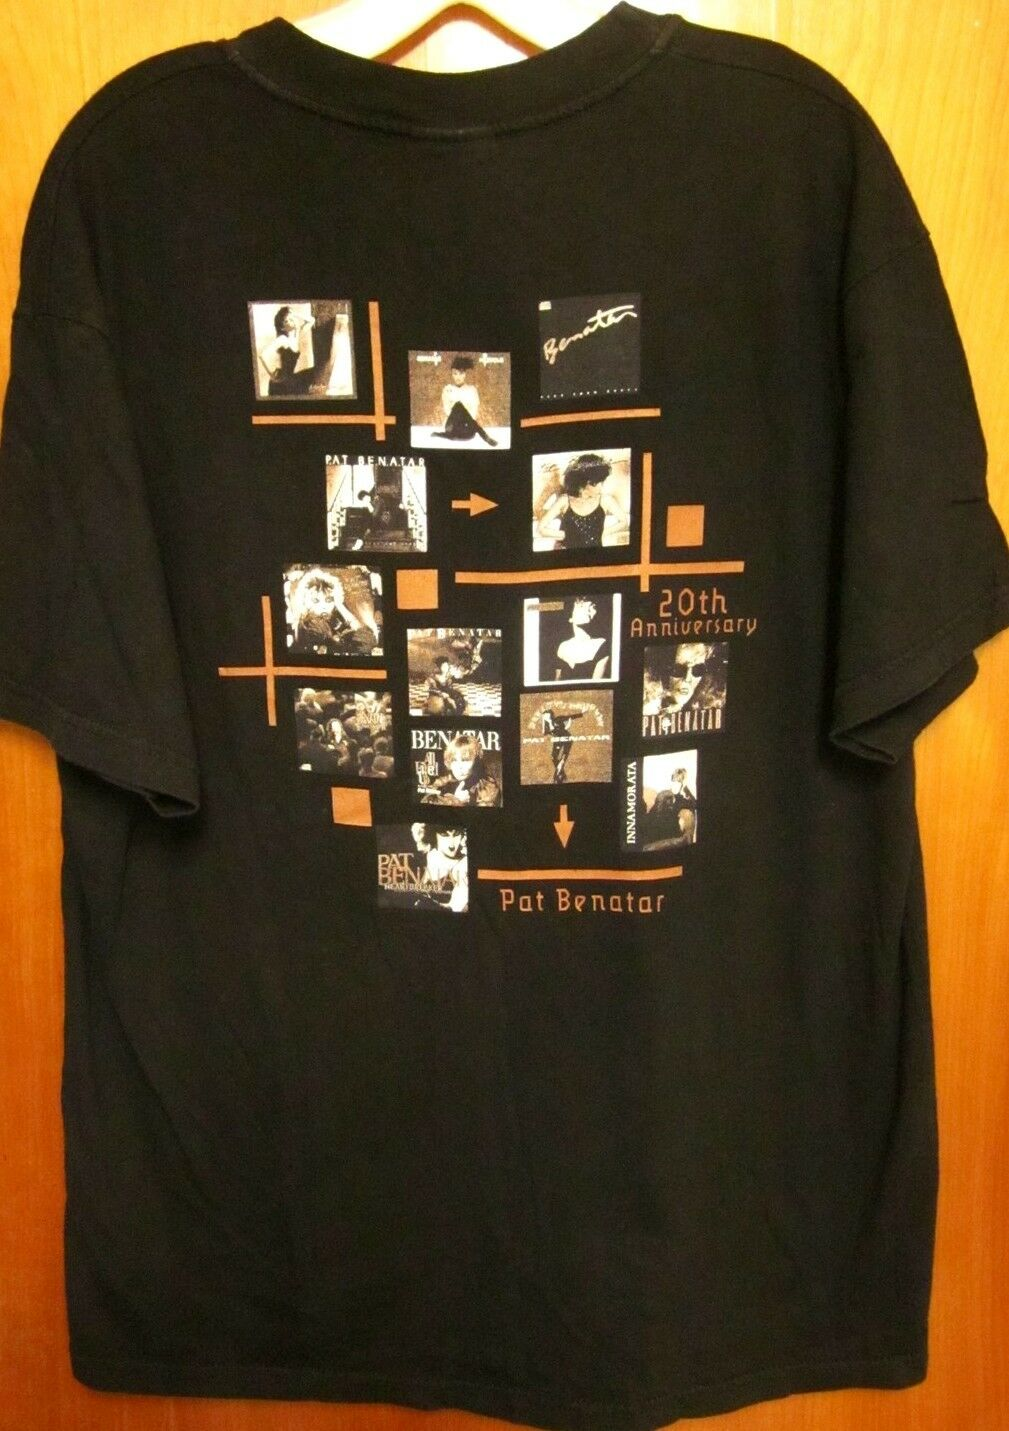 PAT BENATAR lrg concert T shirt large 20th Anniversary tour tee Album Covers